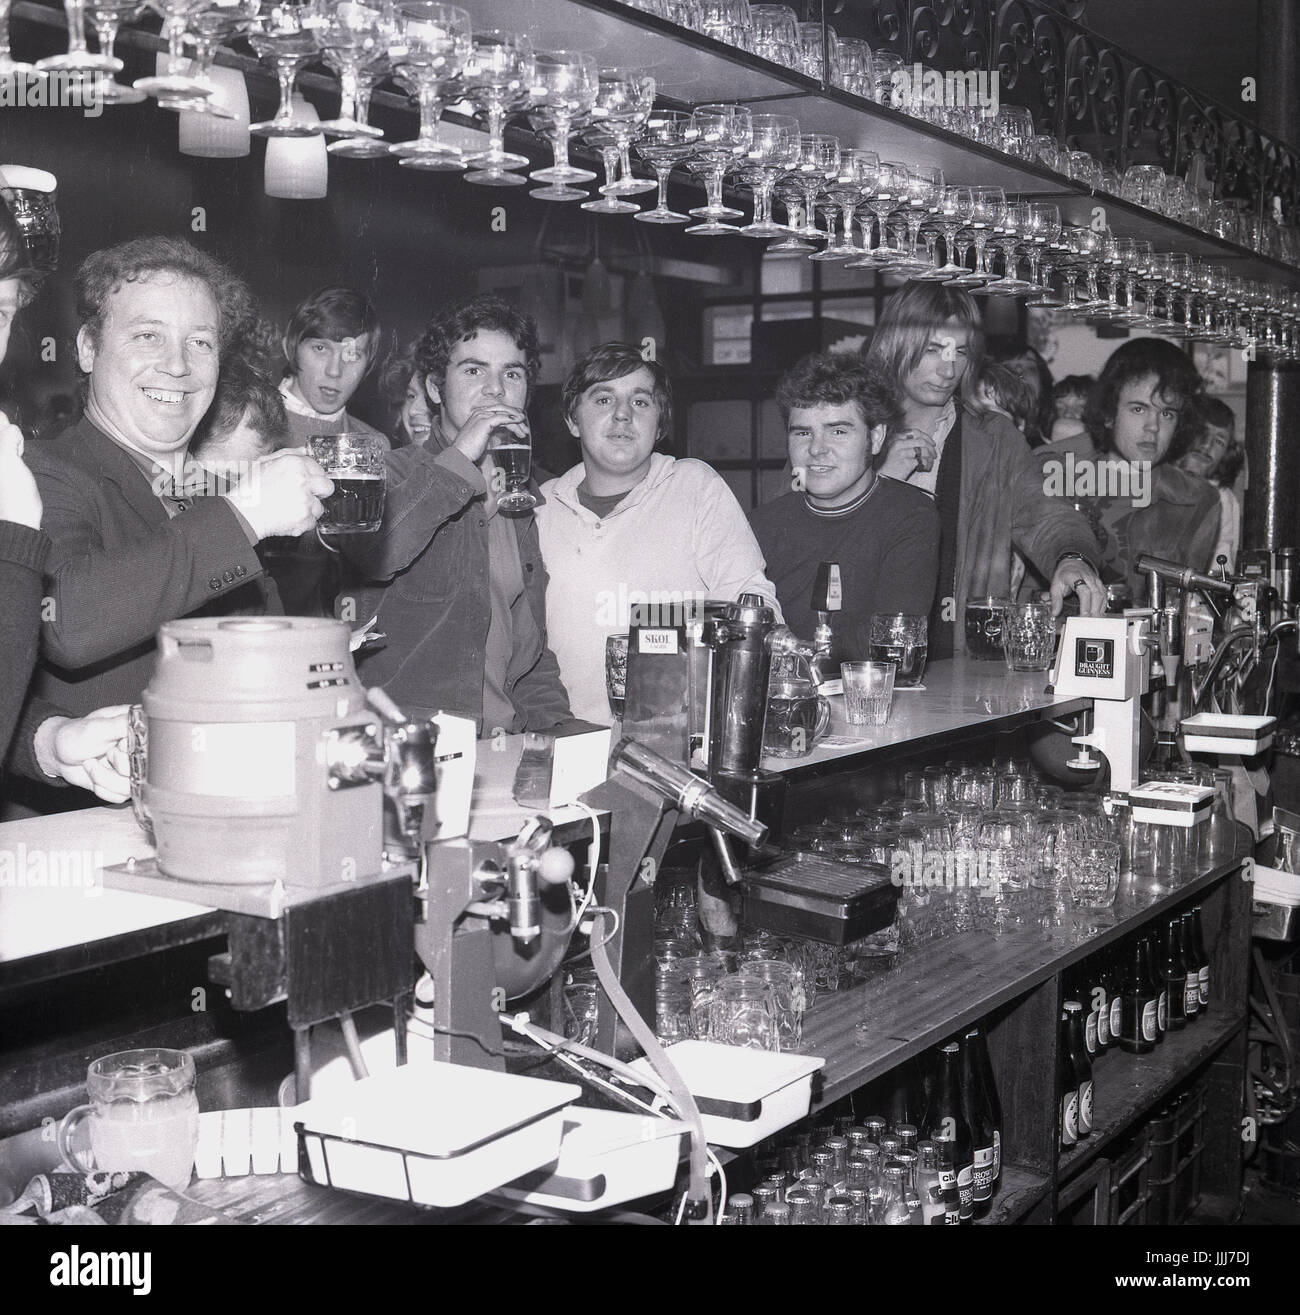 1970s, England, sudents at a bar drinking. - Stock Image